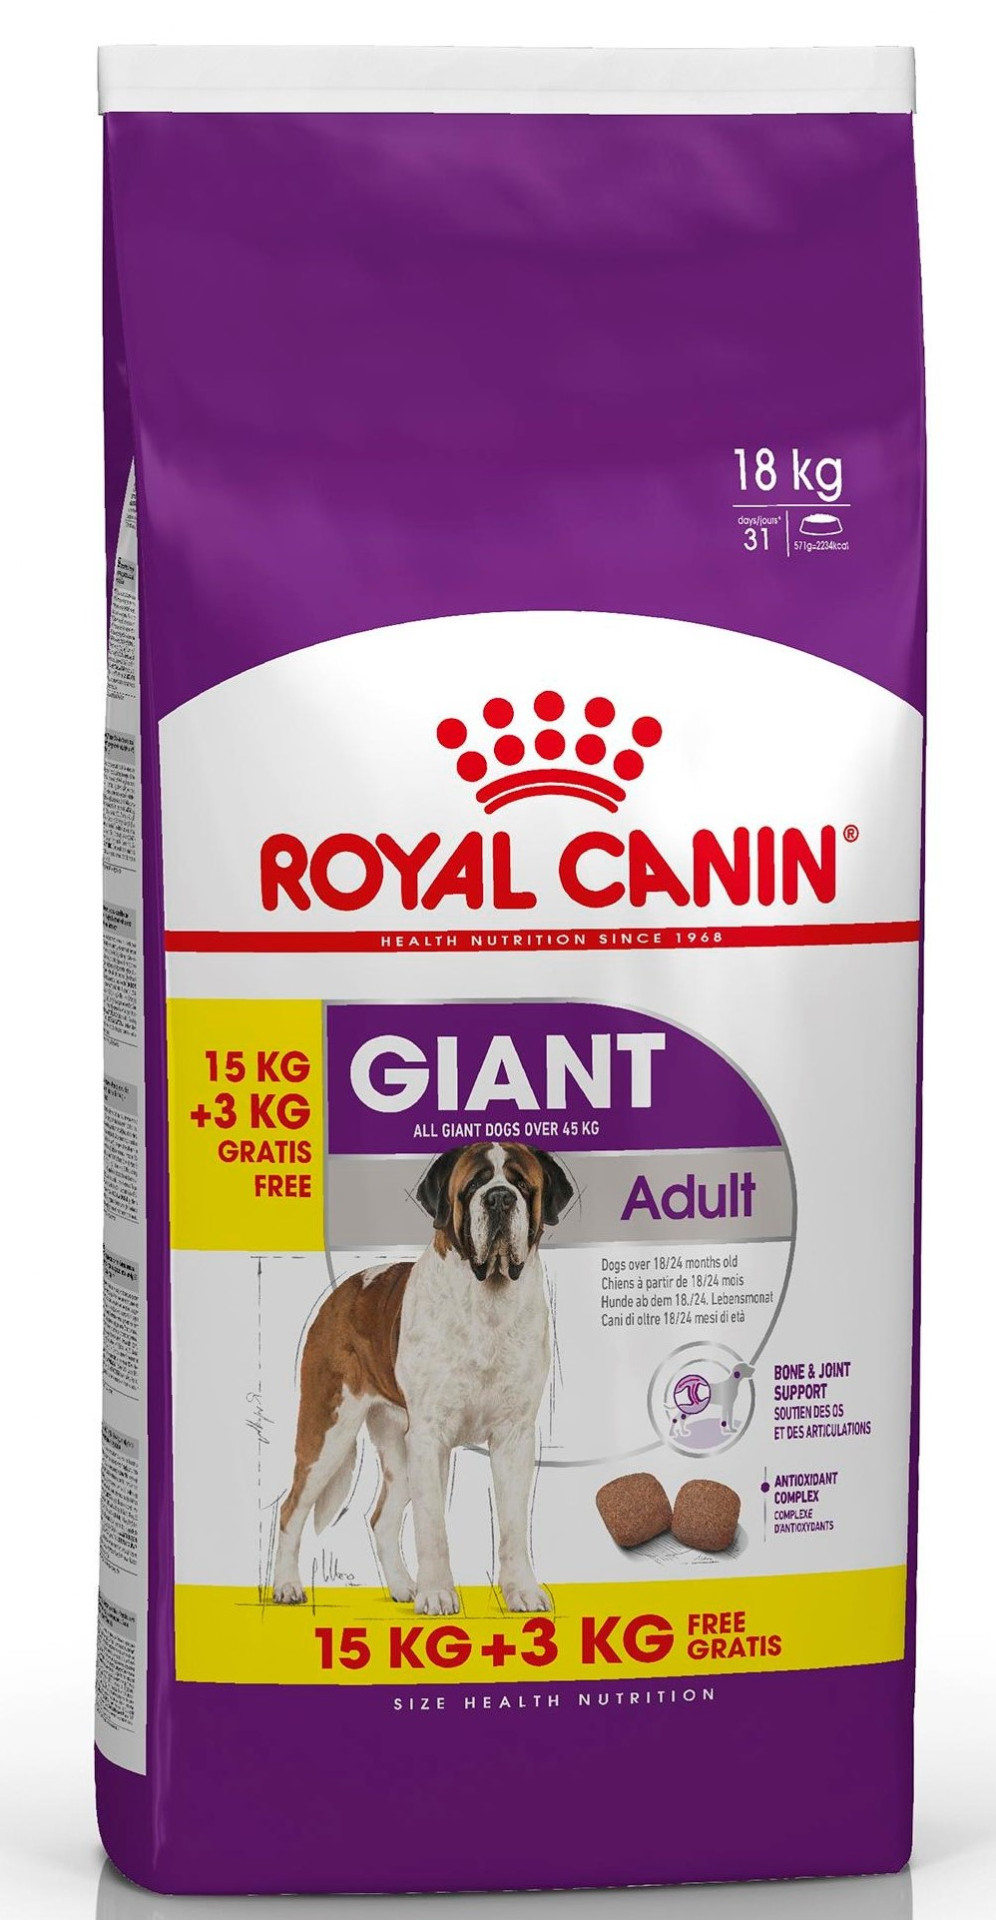 15 + 3 kg Royal Canin hondenvoer Giant Adult